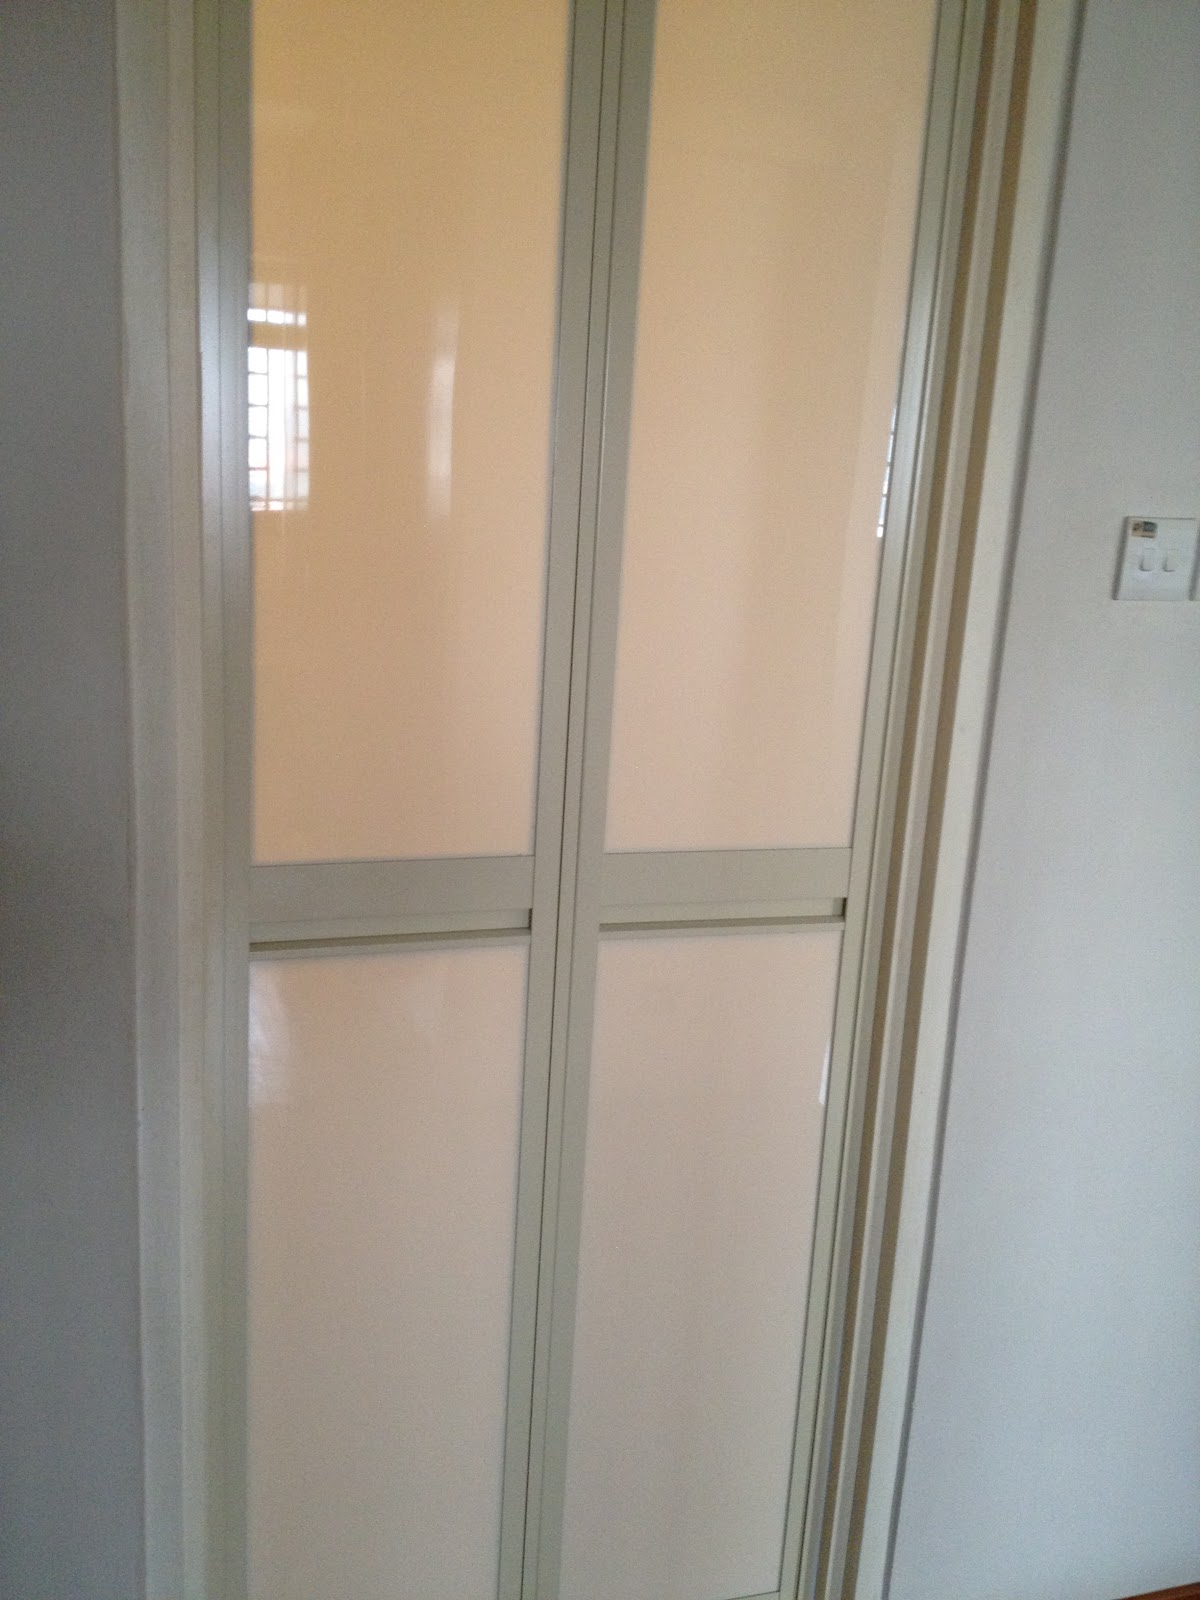 Surprising Toilet Folding Door Singapore Images - Plan 3D house ...